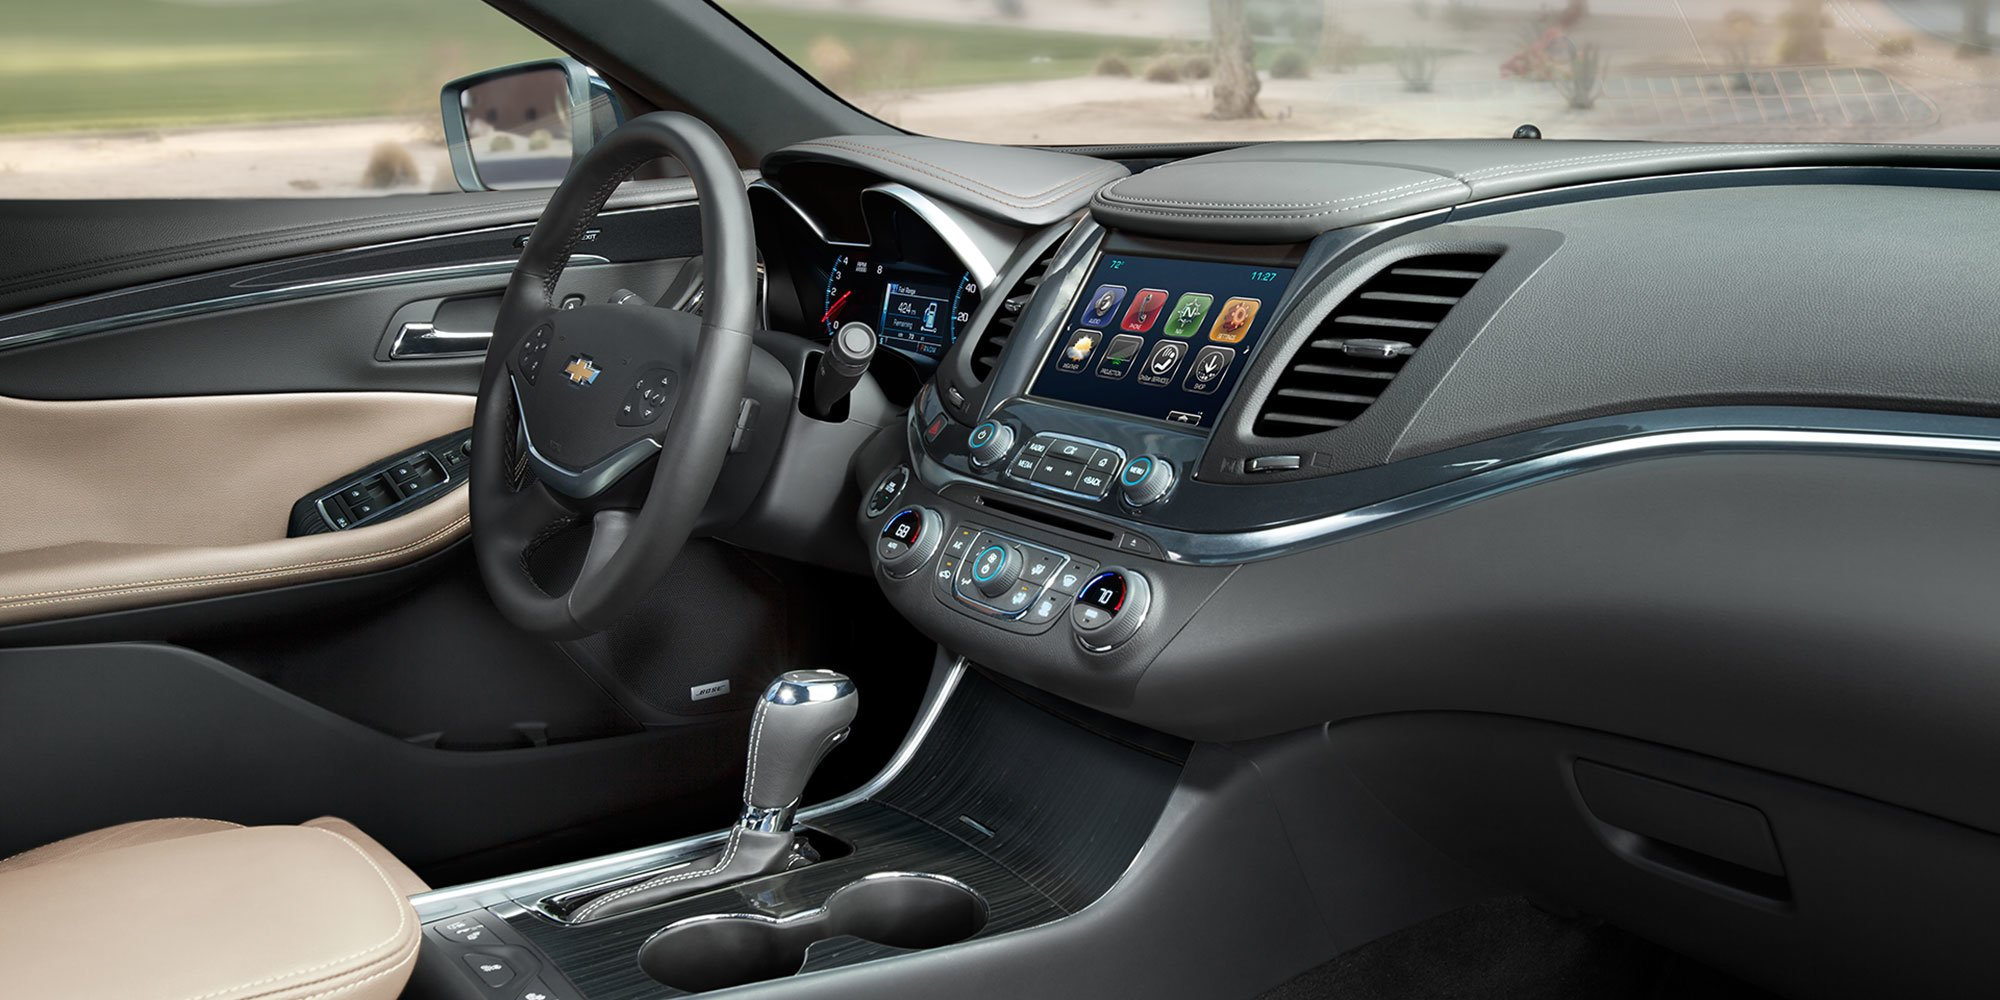 hight resolution of new chevrolet impala interior features